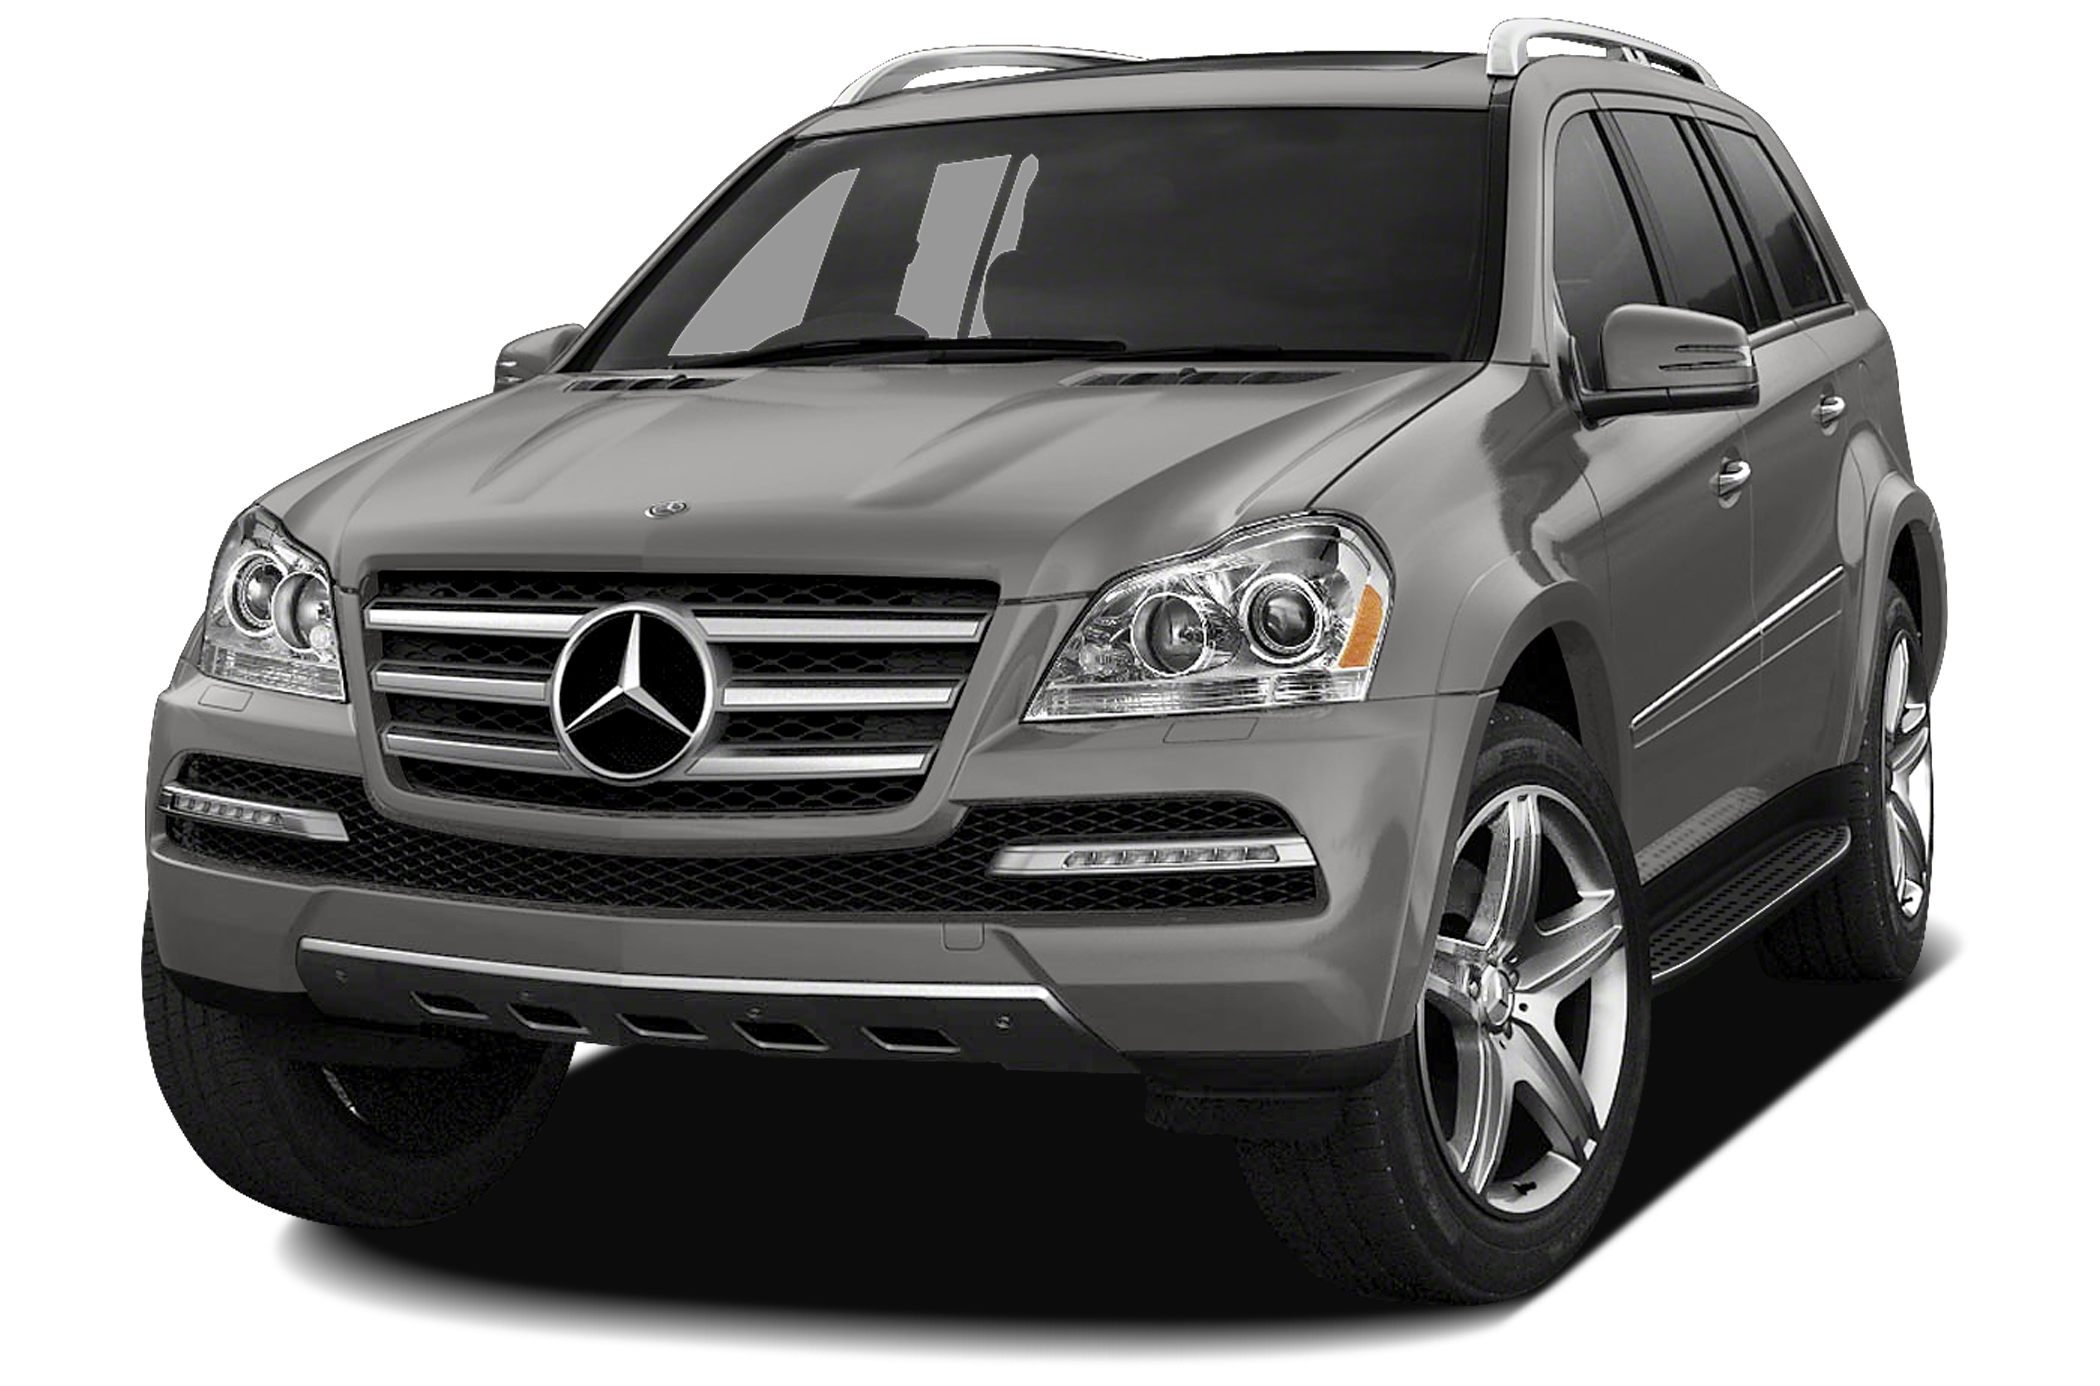 2011 Mercedes-Benz GL550 Styles & Features Highlights